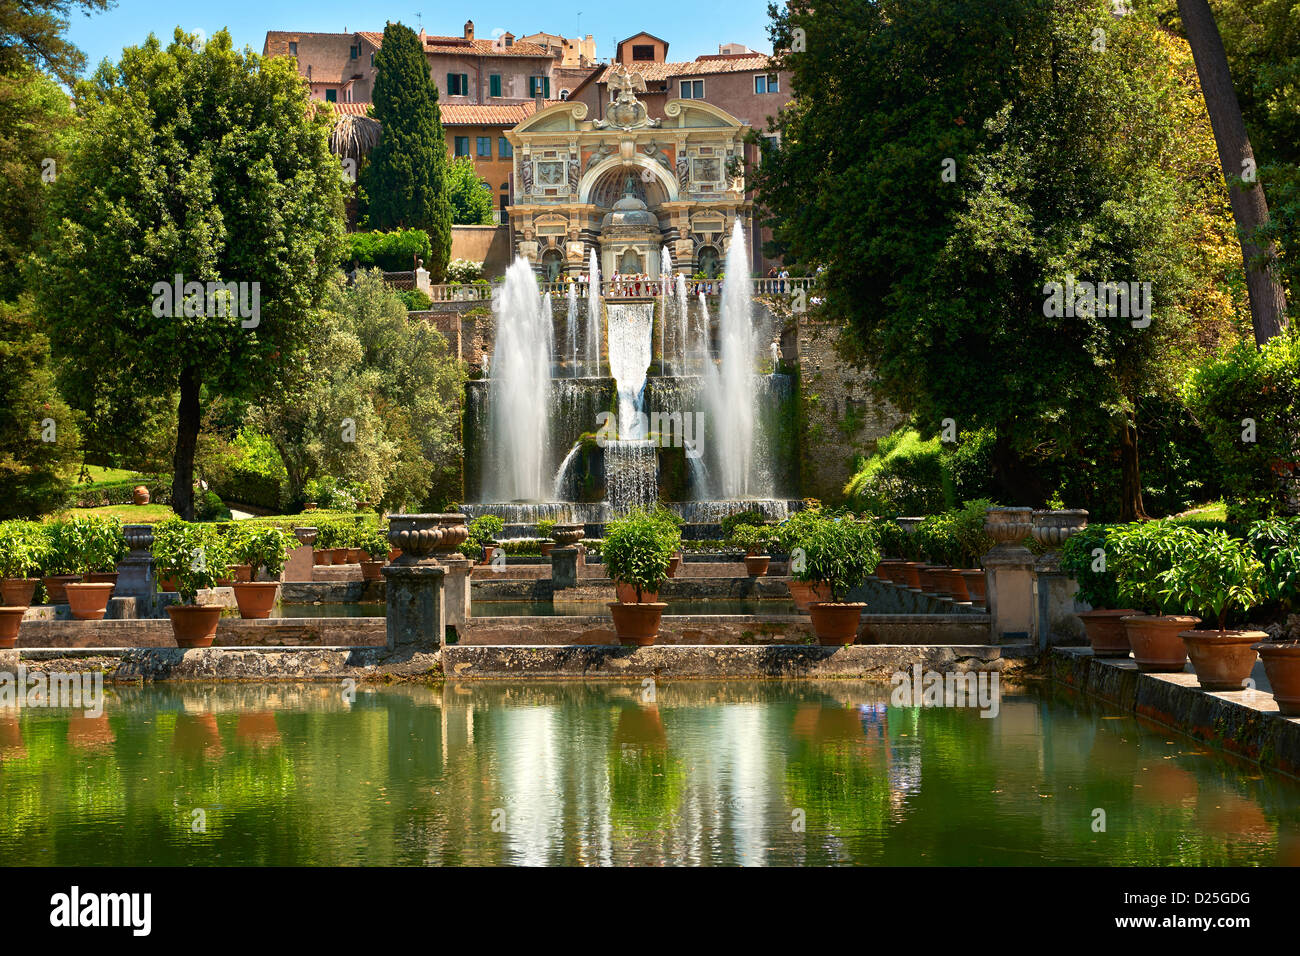 the water jets of the organ fountain villa d 39 este tivoli italy stock photo 52983100 alamy. Black Bedroom Furniture Sets. Home Design Ideas